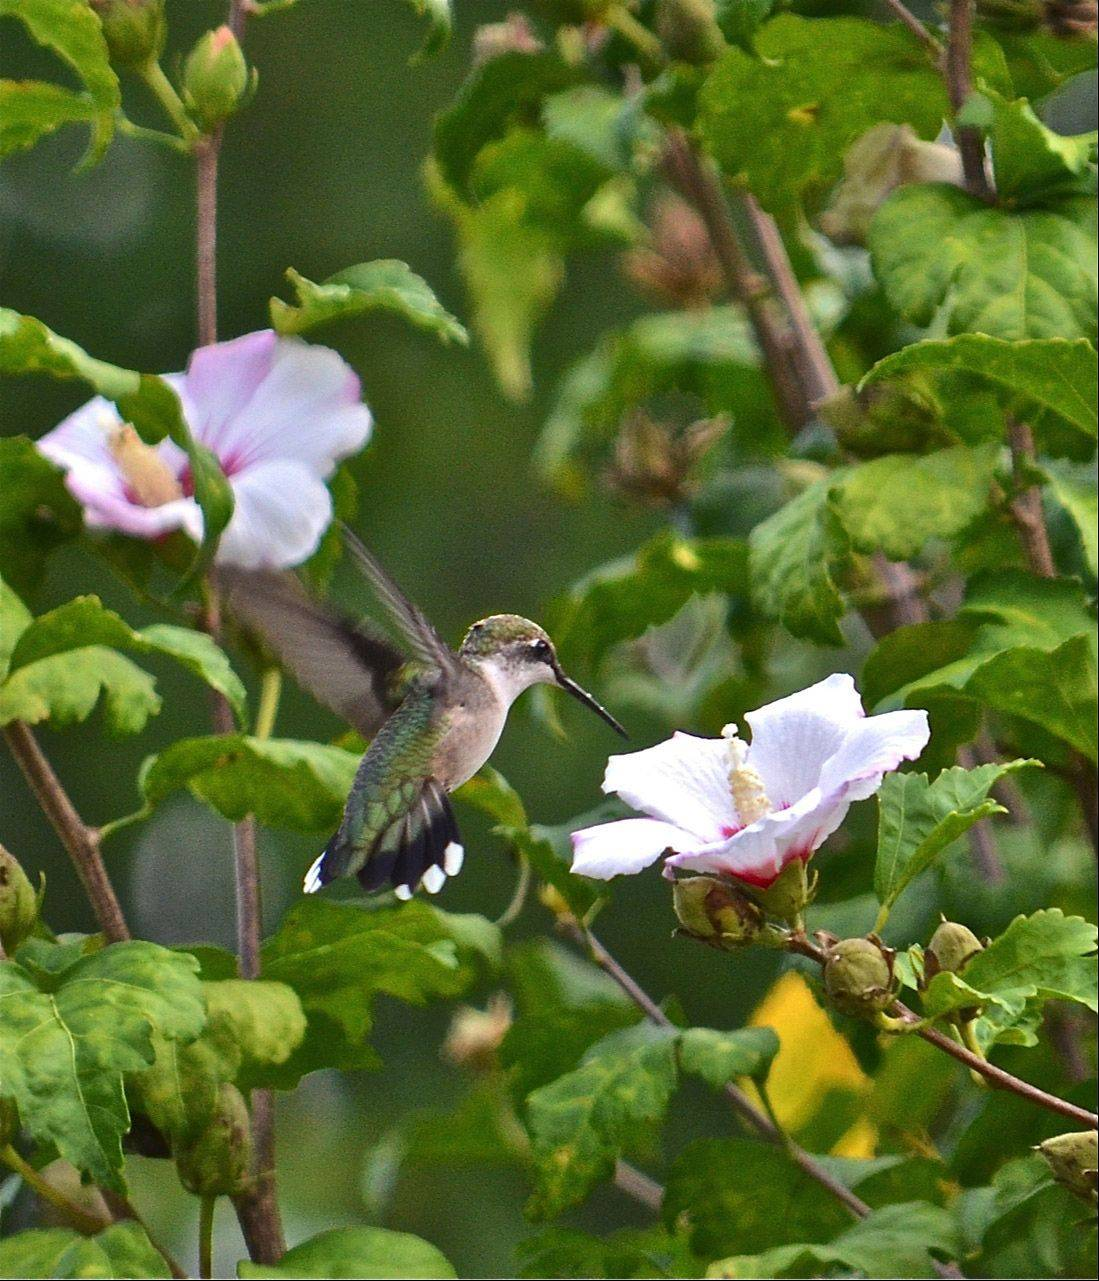 A hummingbird moves from flower to flower on an September morning last year in Cincinnati, Ohio.